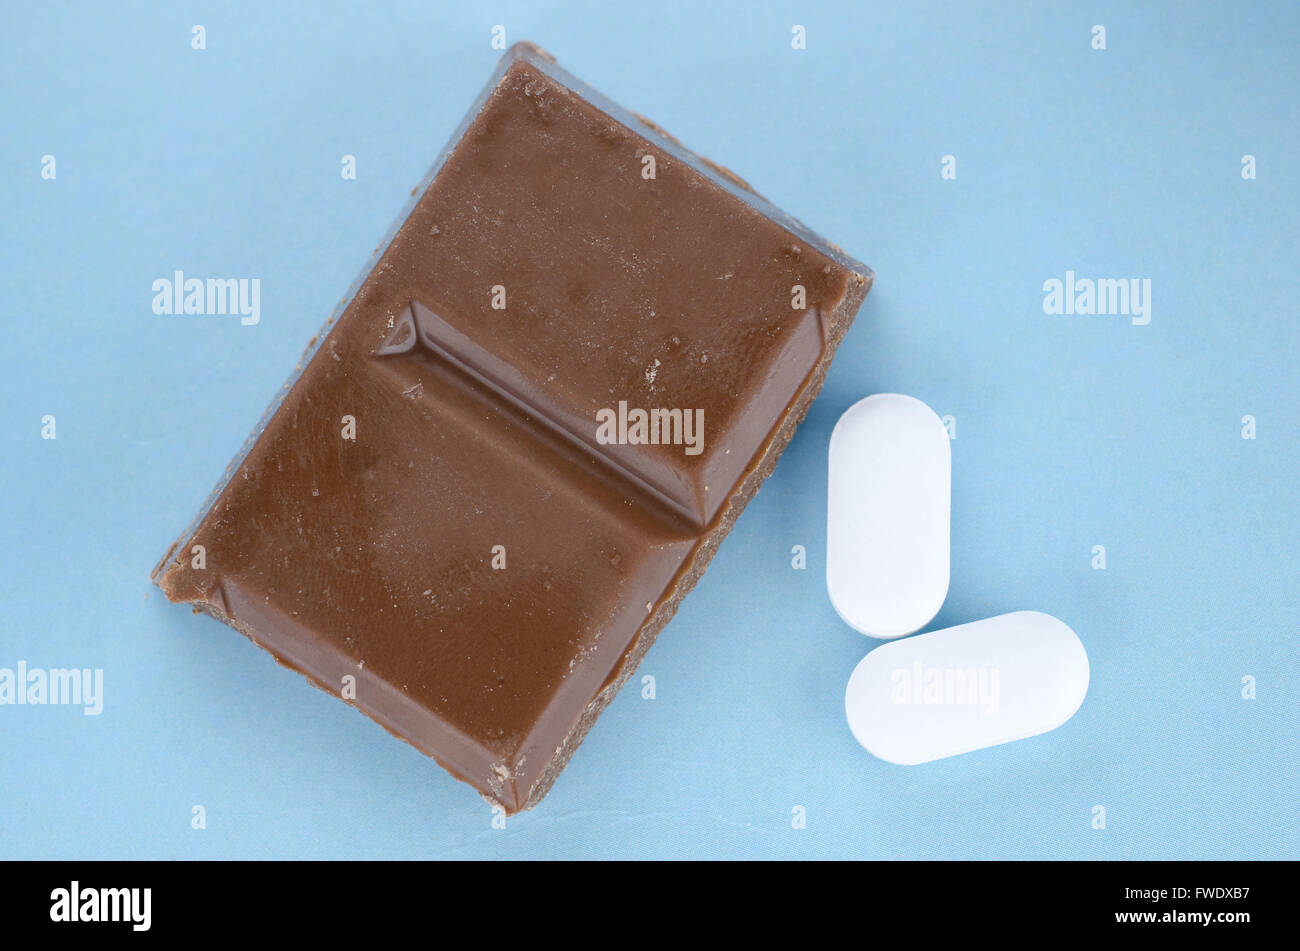 Chocolate triggers migraine headaches concept with piece of chocolate and two painkiller tablets - Stock Image